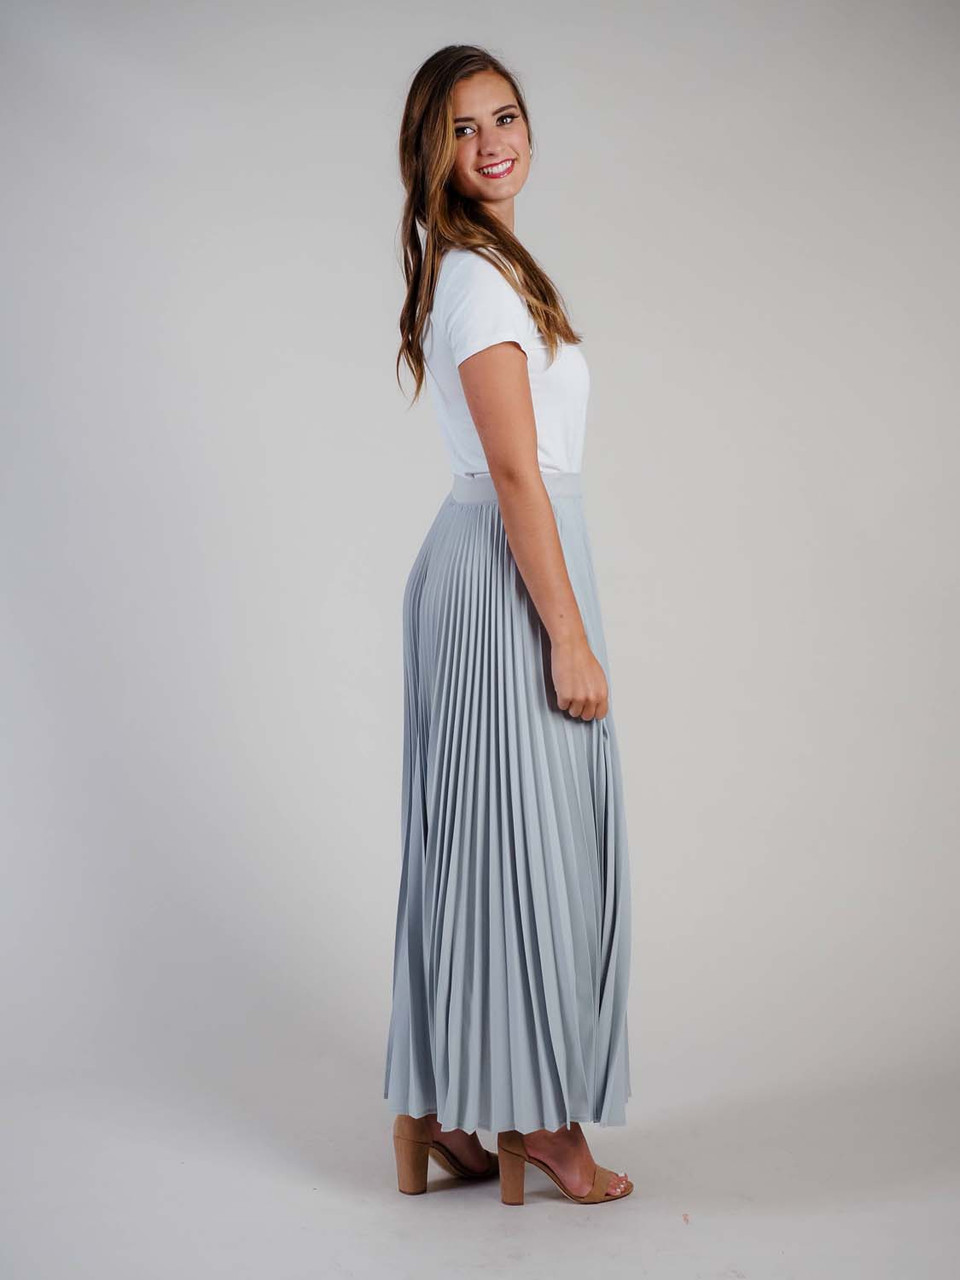 Pleated Skirt in Silver